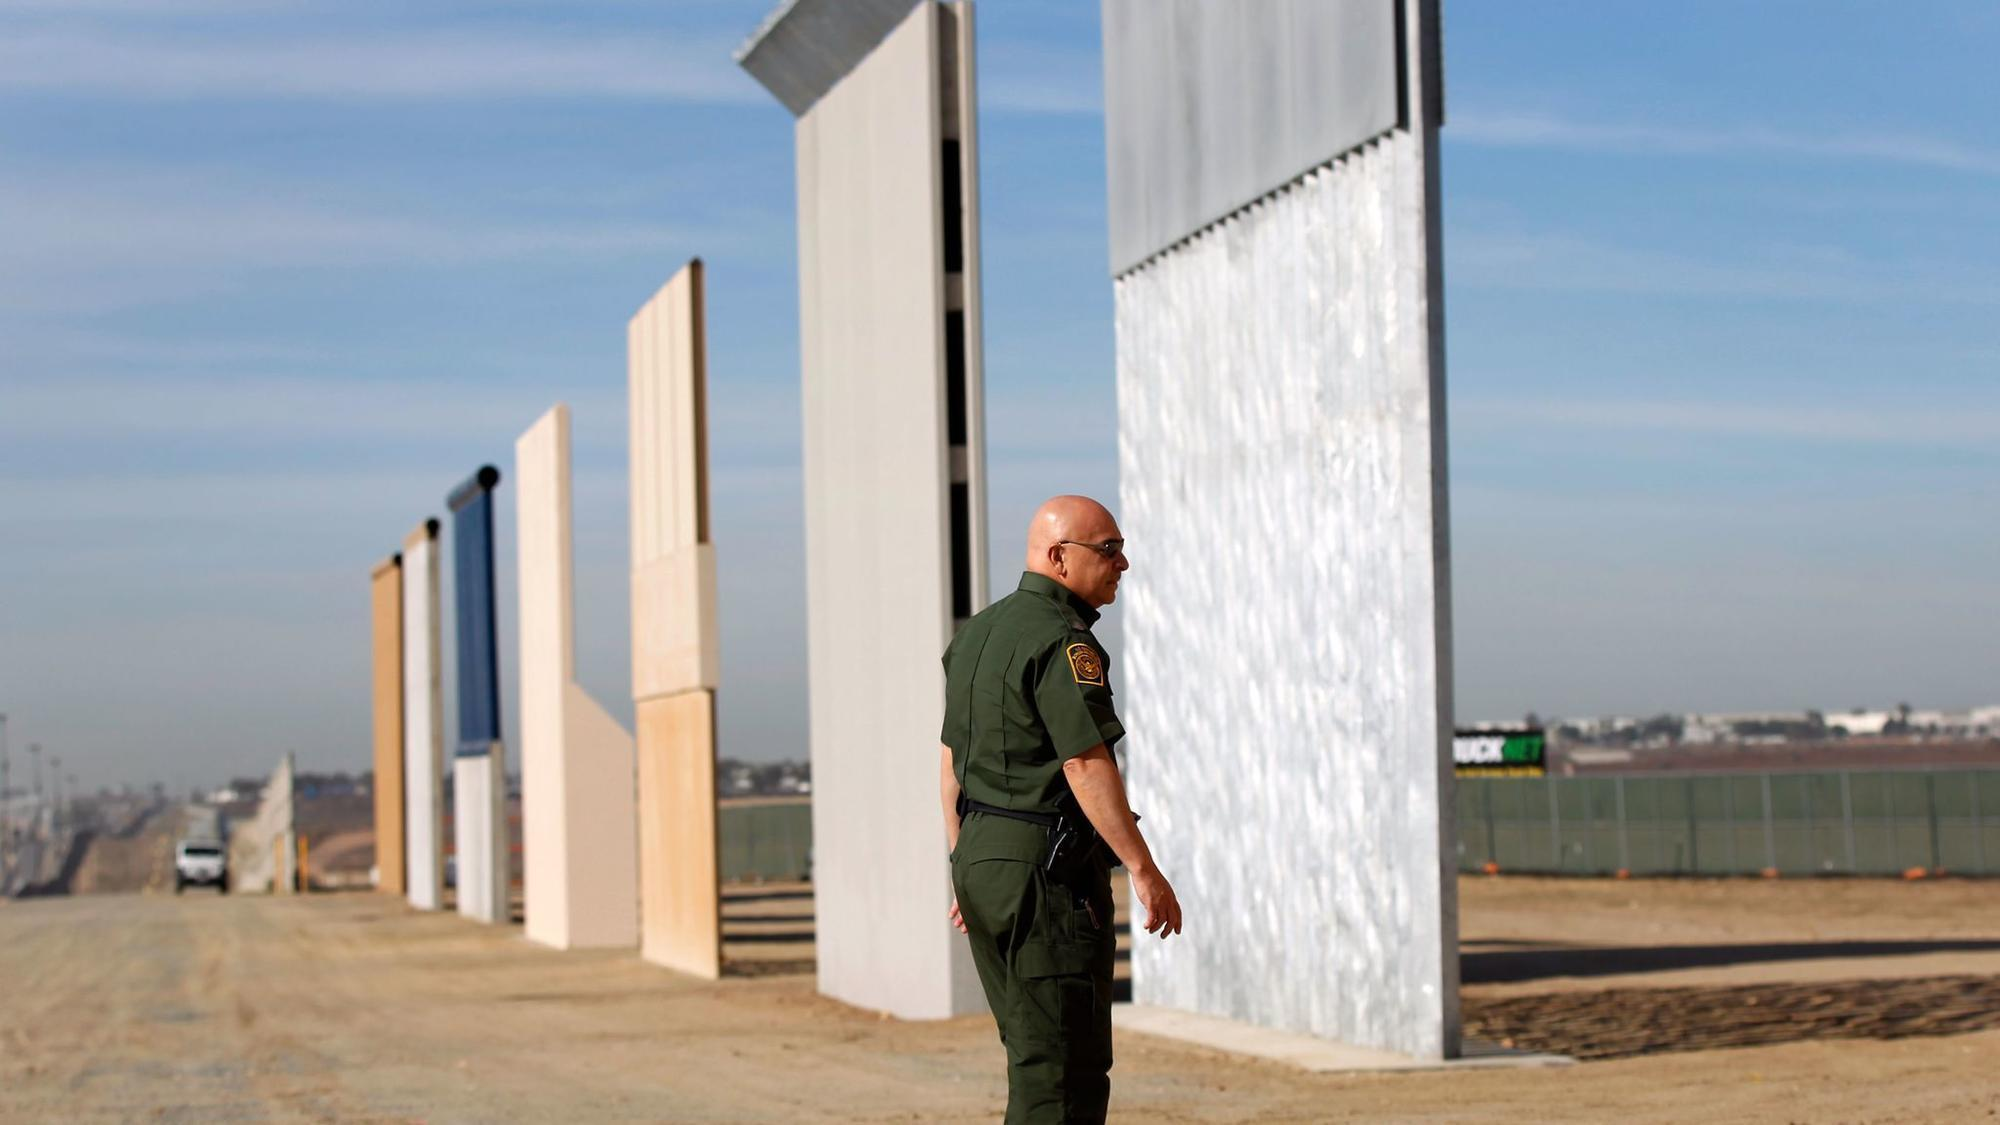 Trump 39 s border wall prototypes got video surveillance for Border wall